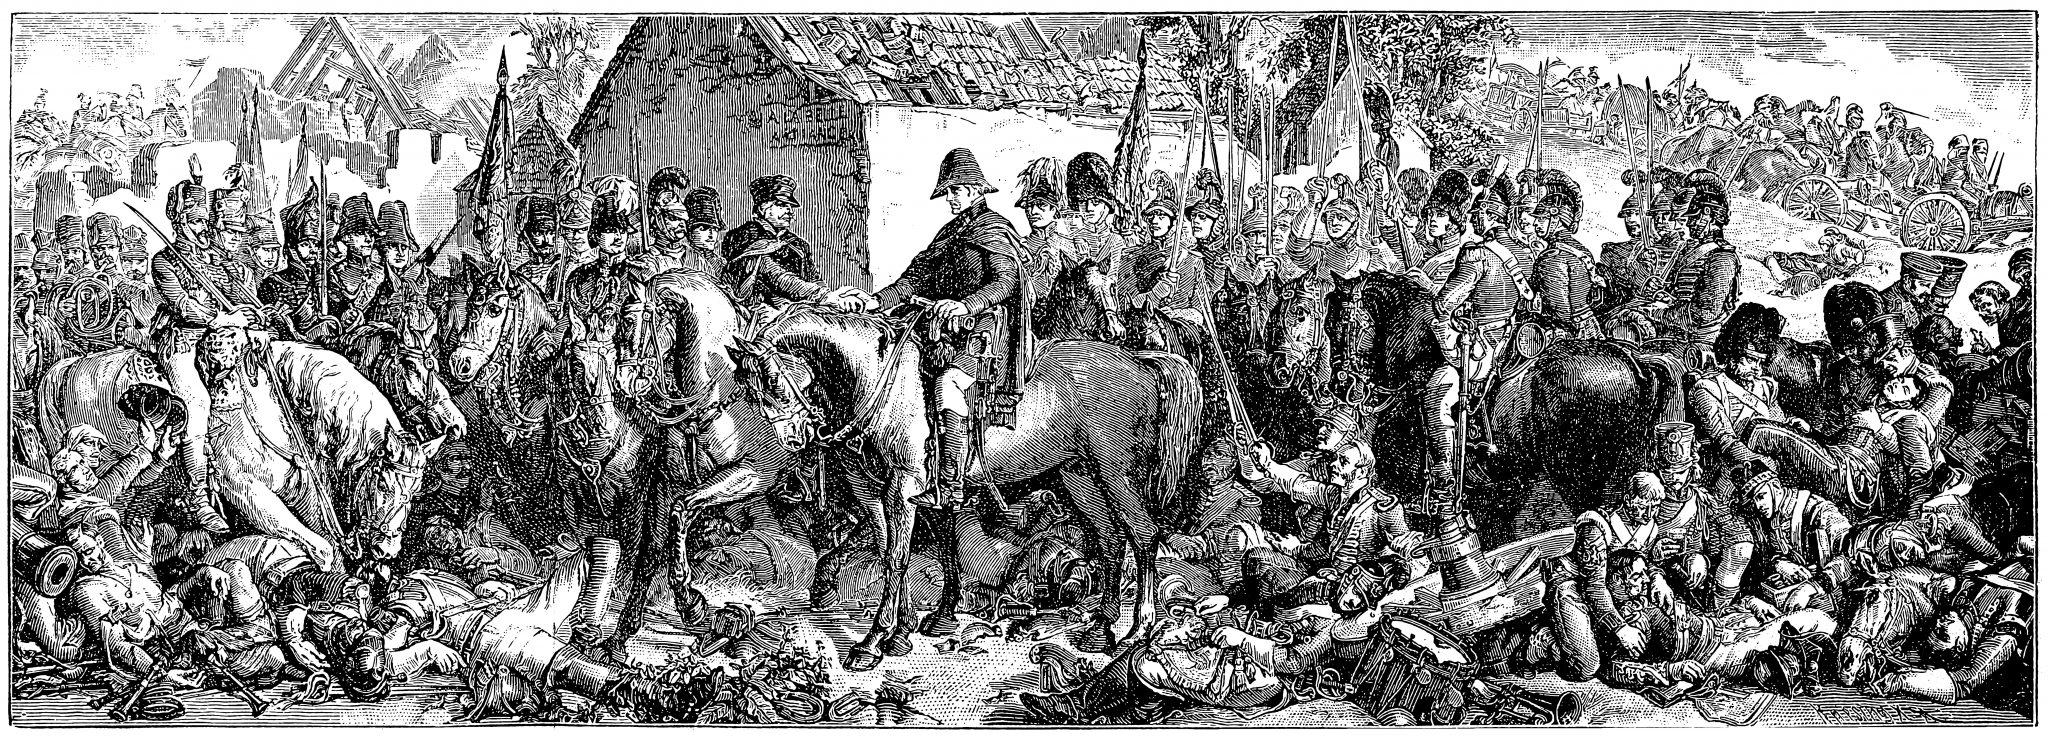 The Meeting of Wellington and Blücher after the Battle of Waterloo